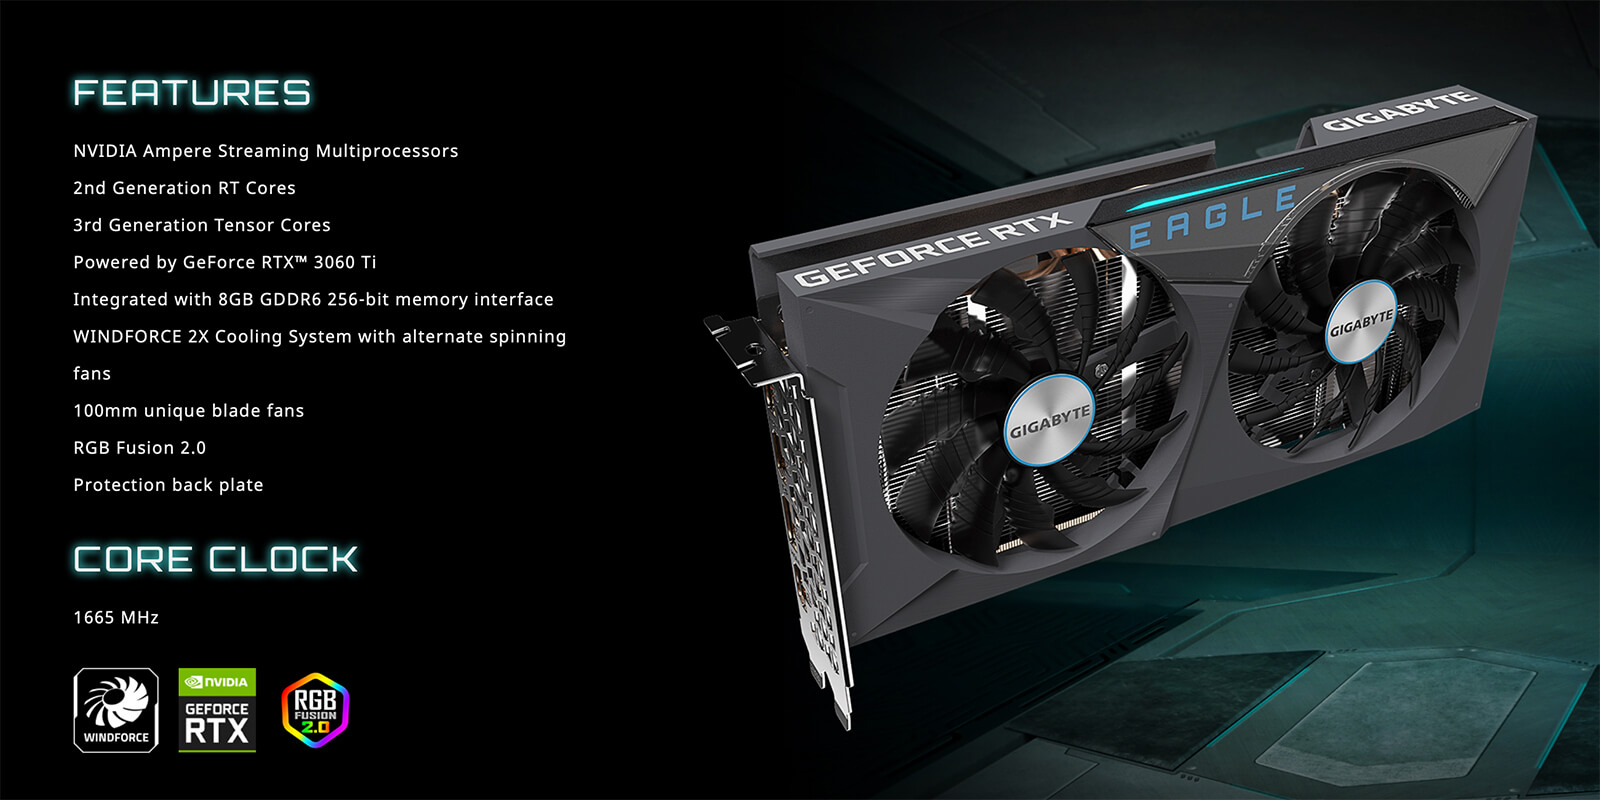 Gigabyte Geforce® Rtx 3060 Ti Eagle 8g Features